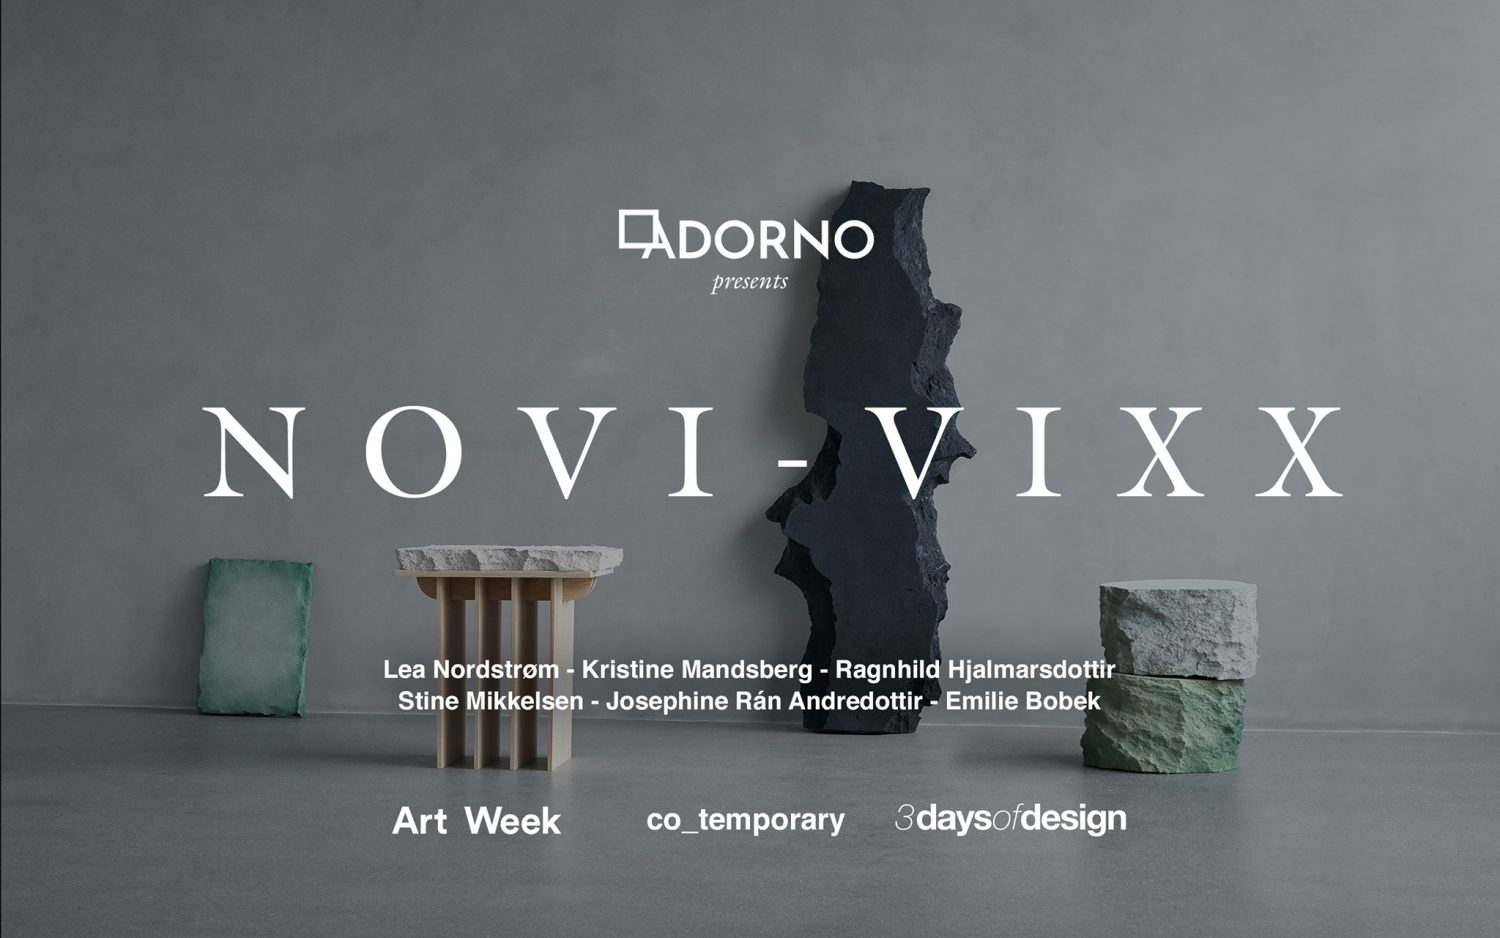 3 Days of Design 2019 3 days of design 2019 3 DAYS OF DESIGN 2019 EVENT GUIDE Adorno